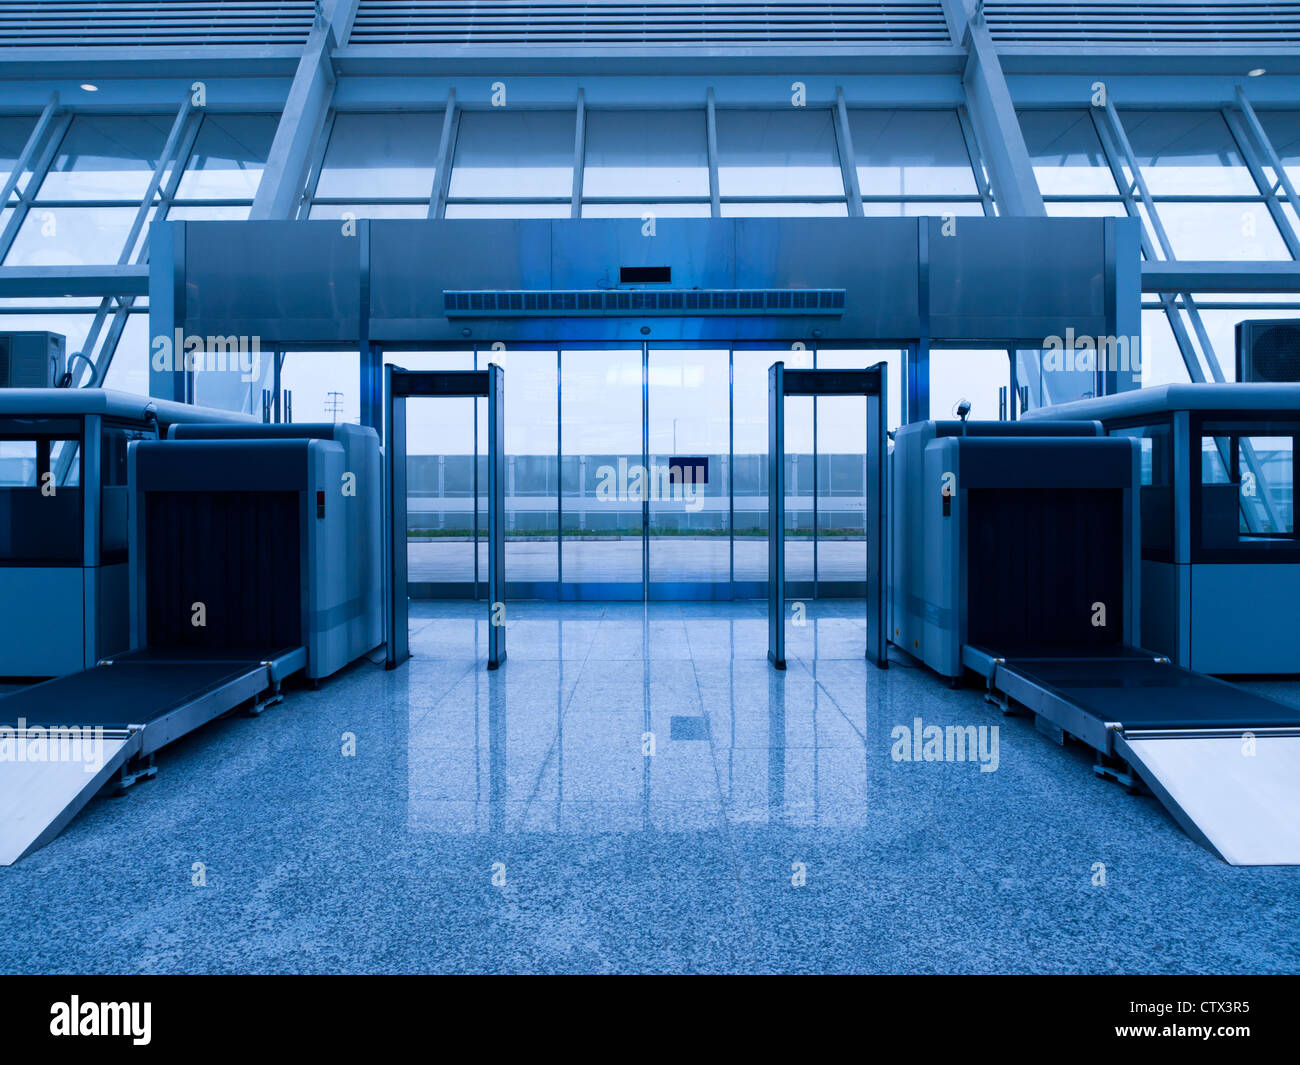 Security check equipment at station. - Stock Image